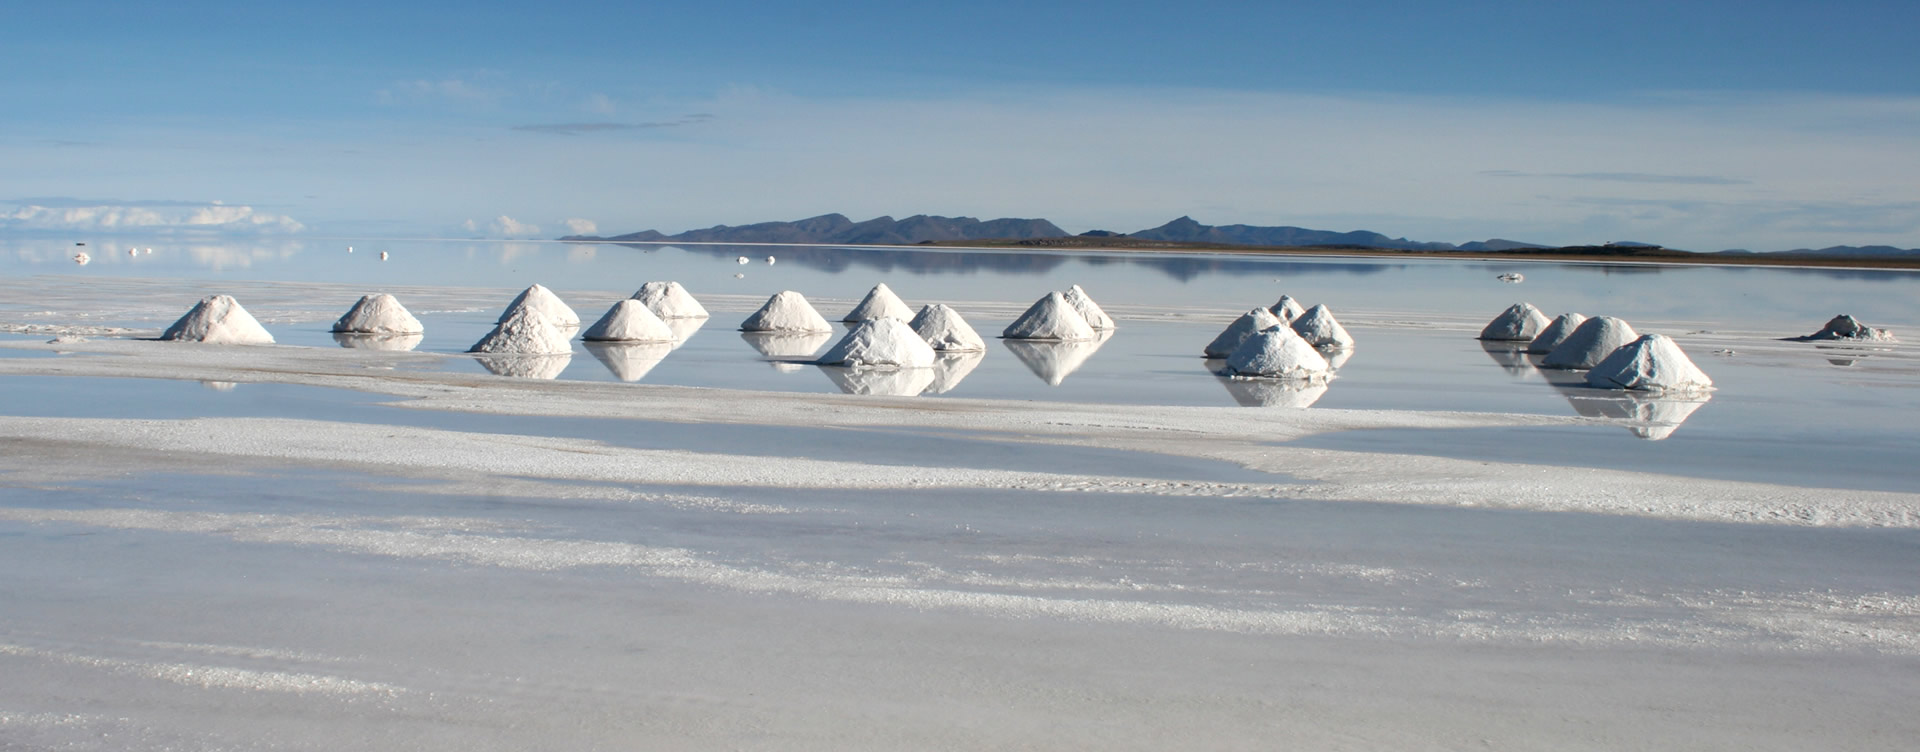 Salt piles in Uyuni